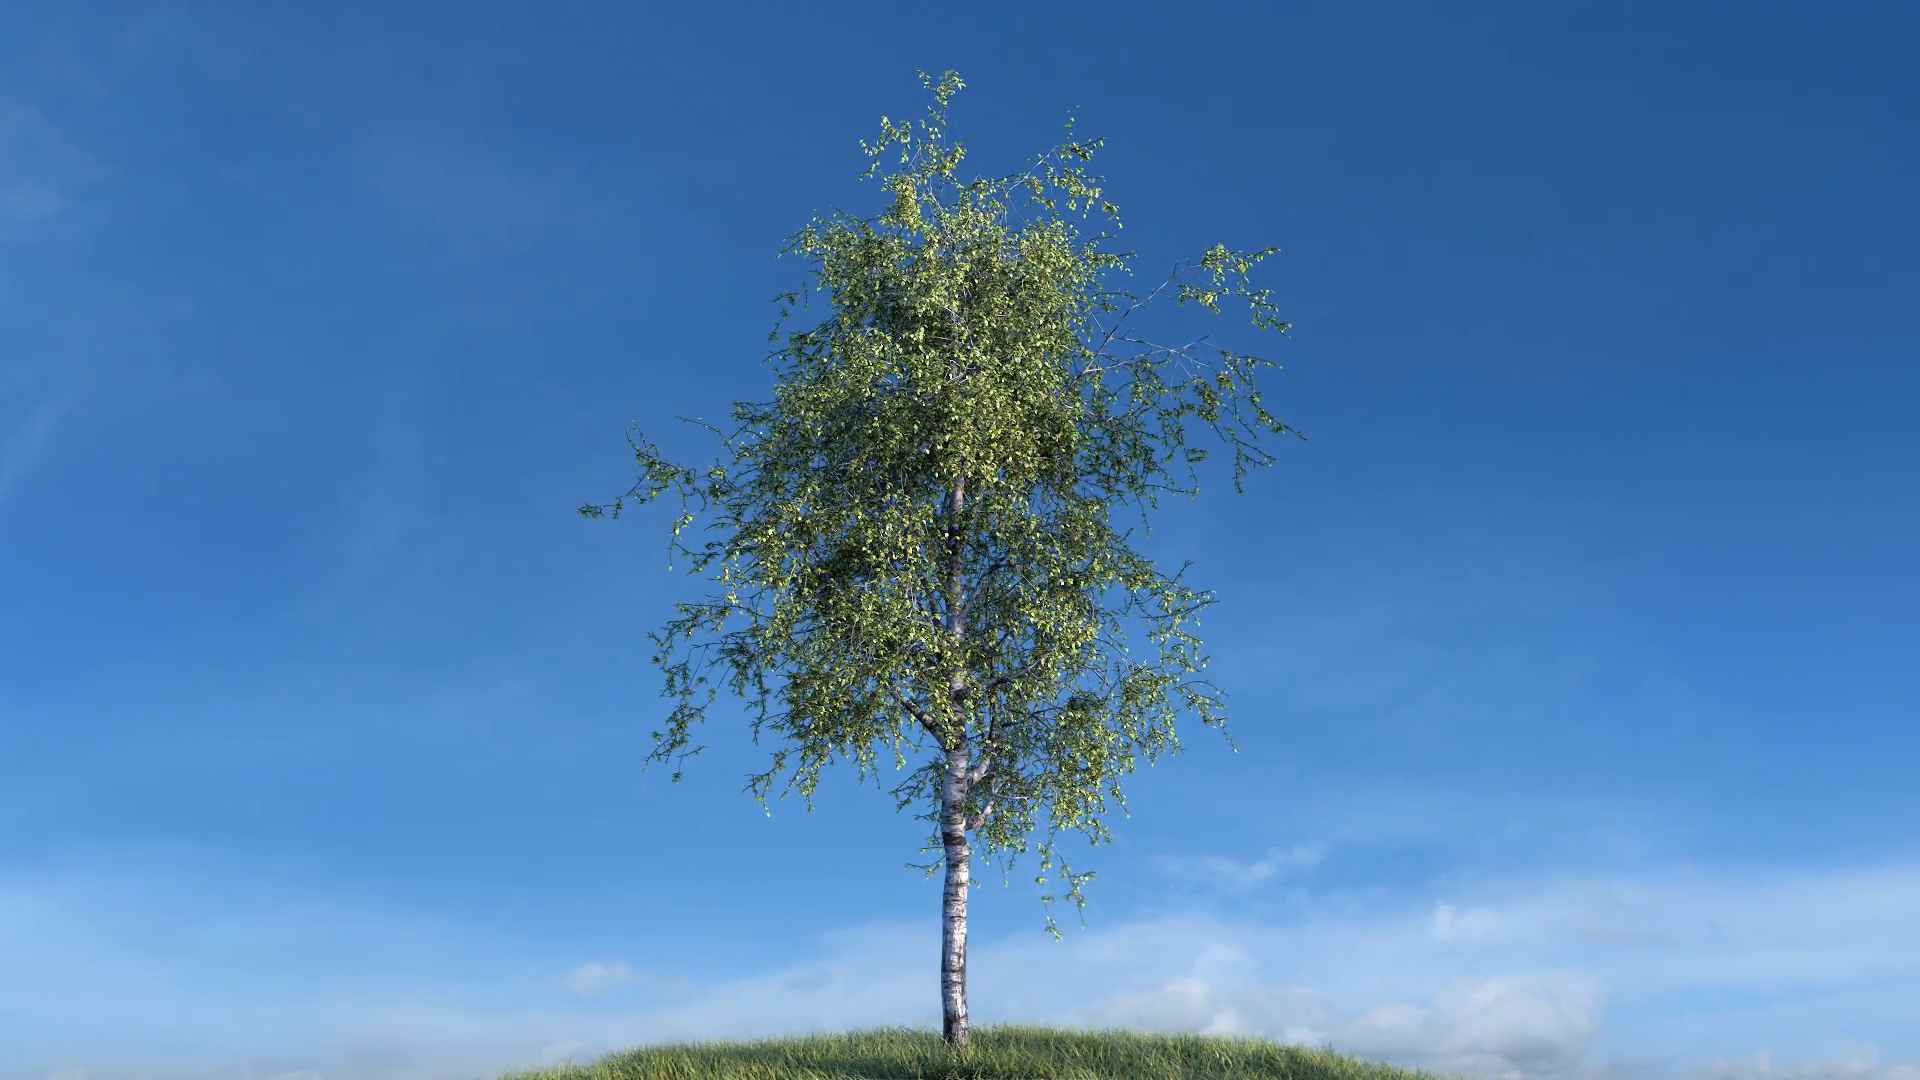 growing-birch-tree-against-sky-with-alpha-matte-cg-animation-full-hd_hw7ikrvi__F0003.png